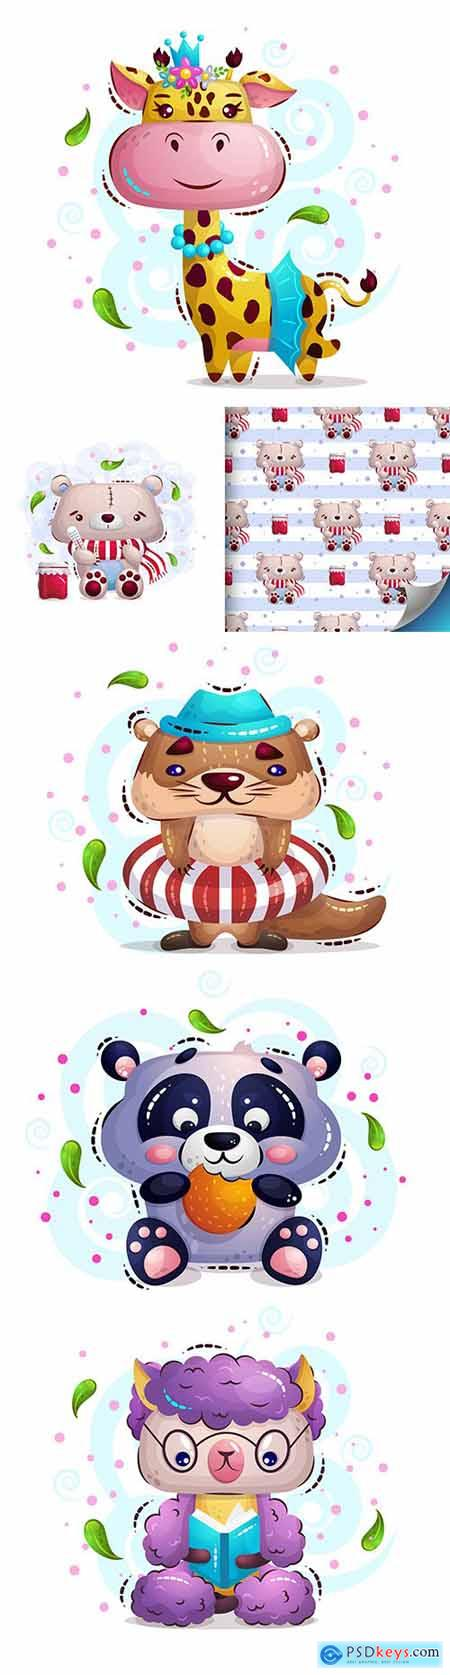 Cartoon character cute children animal illustration